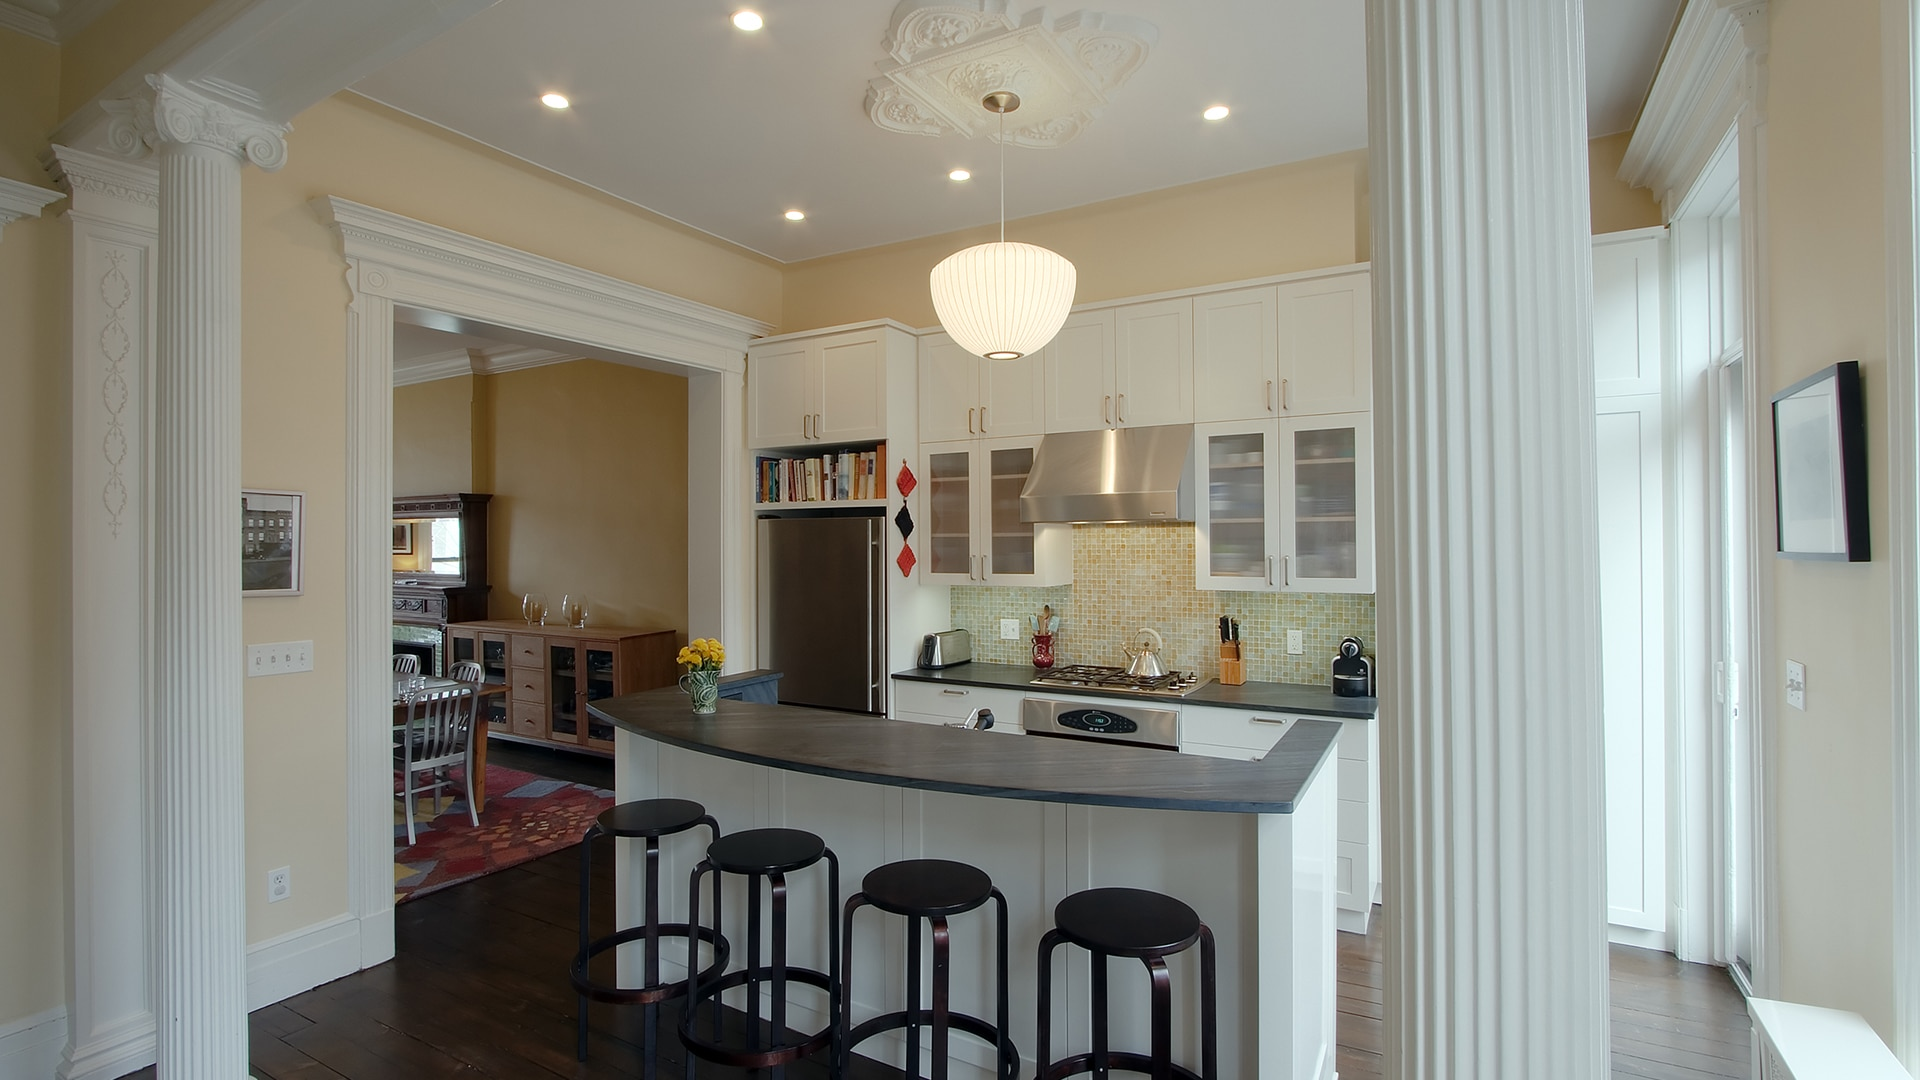 Greenwood heights townhouse ben herzog architect pc for Townhouse kitchen ideas